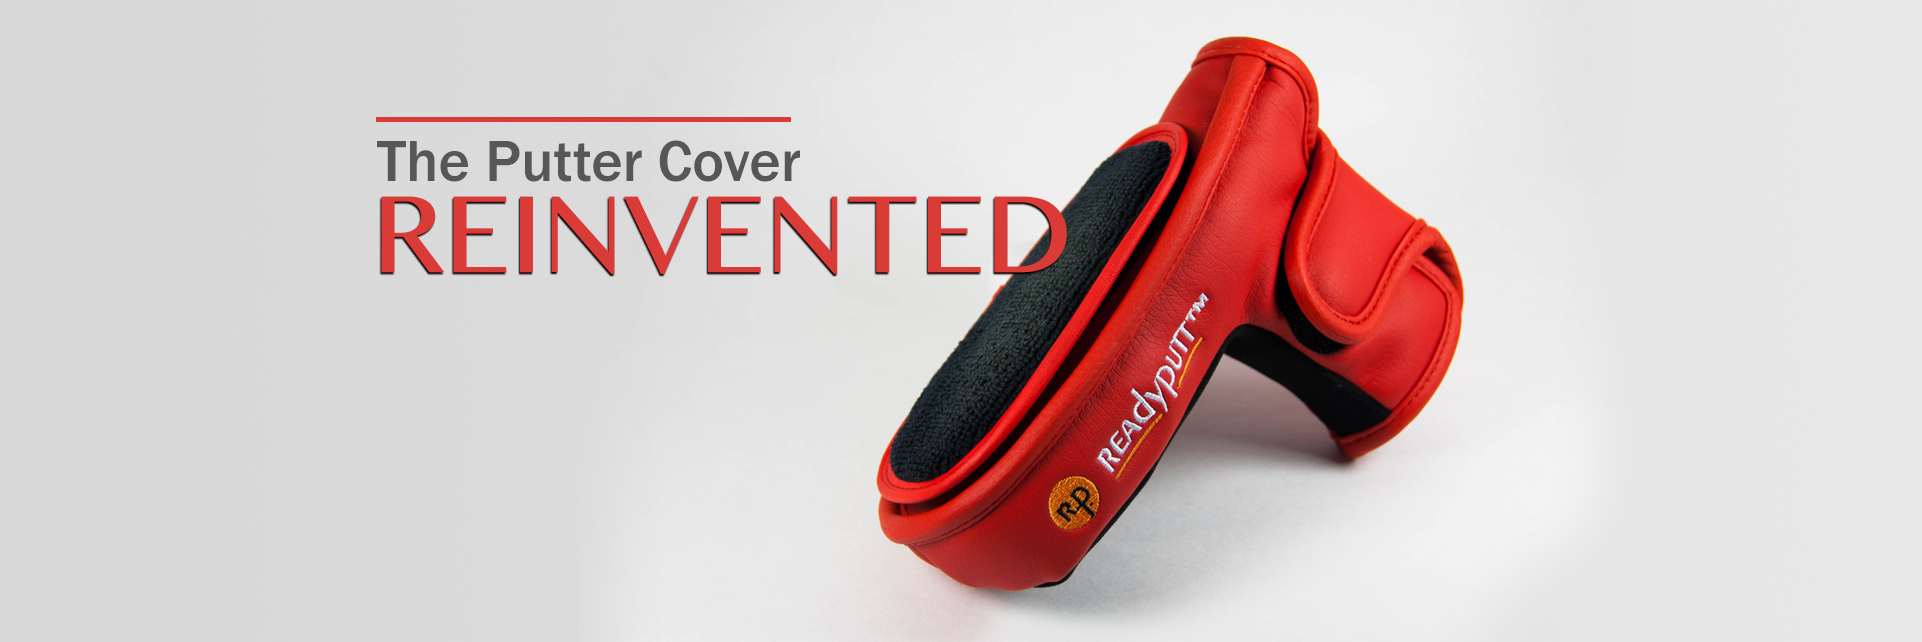 The putter cover reinvented